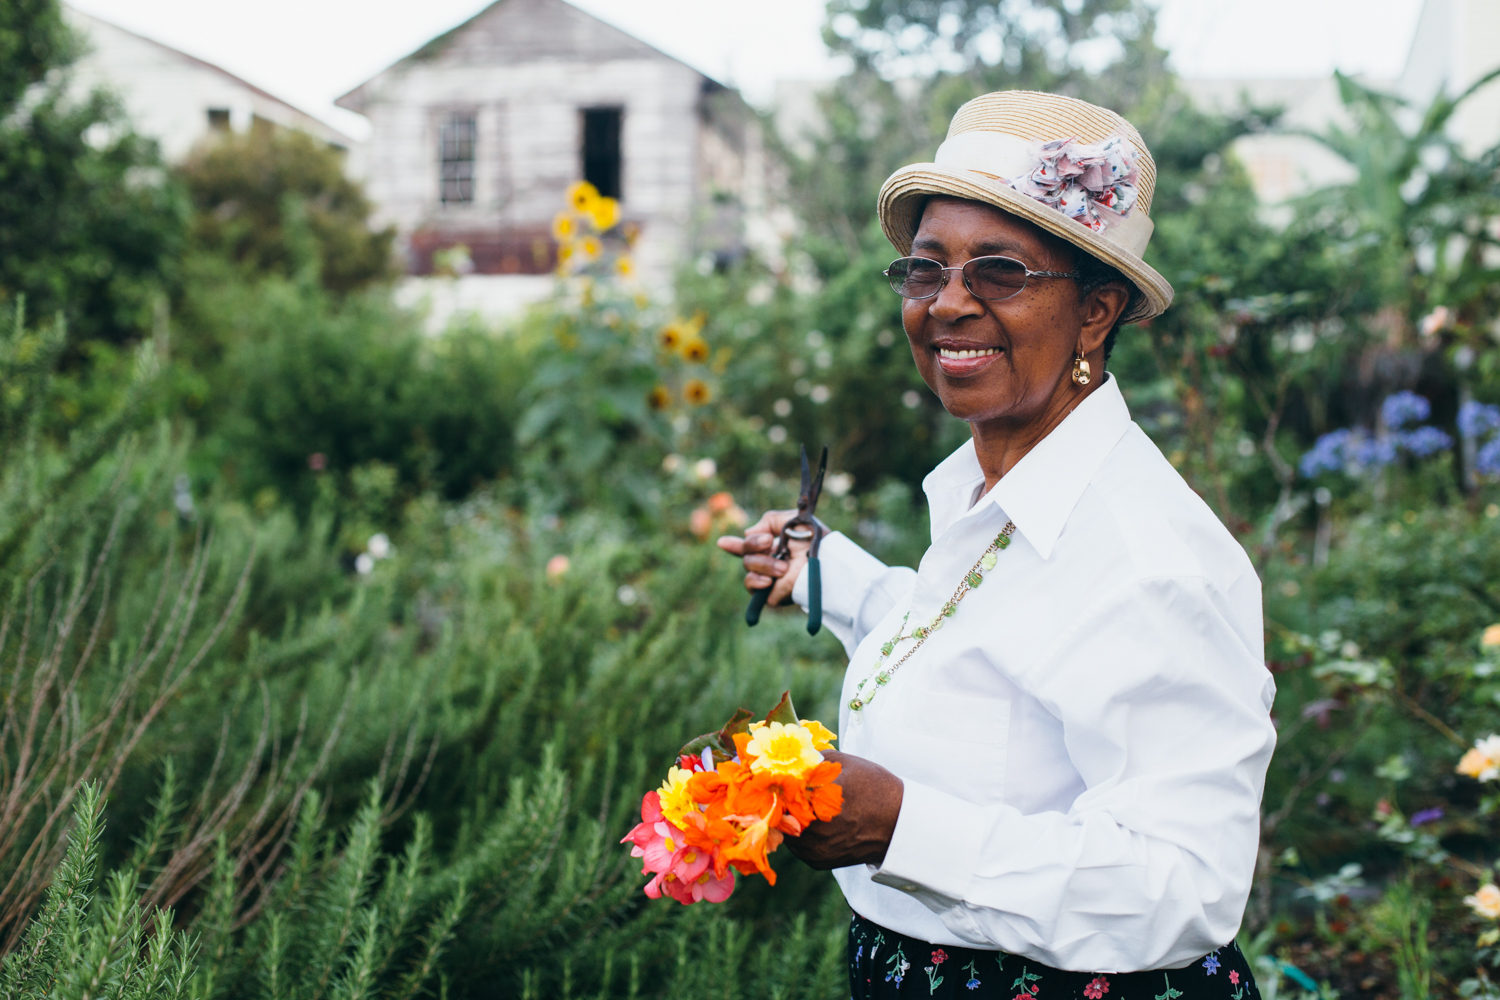 jeanette bell_black people with plants_collection of collections.jpg